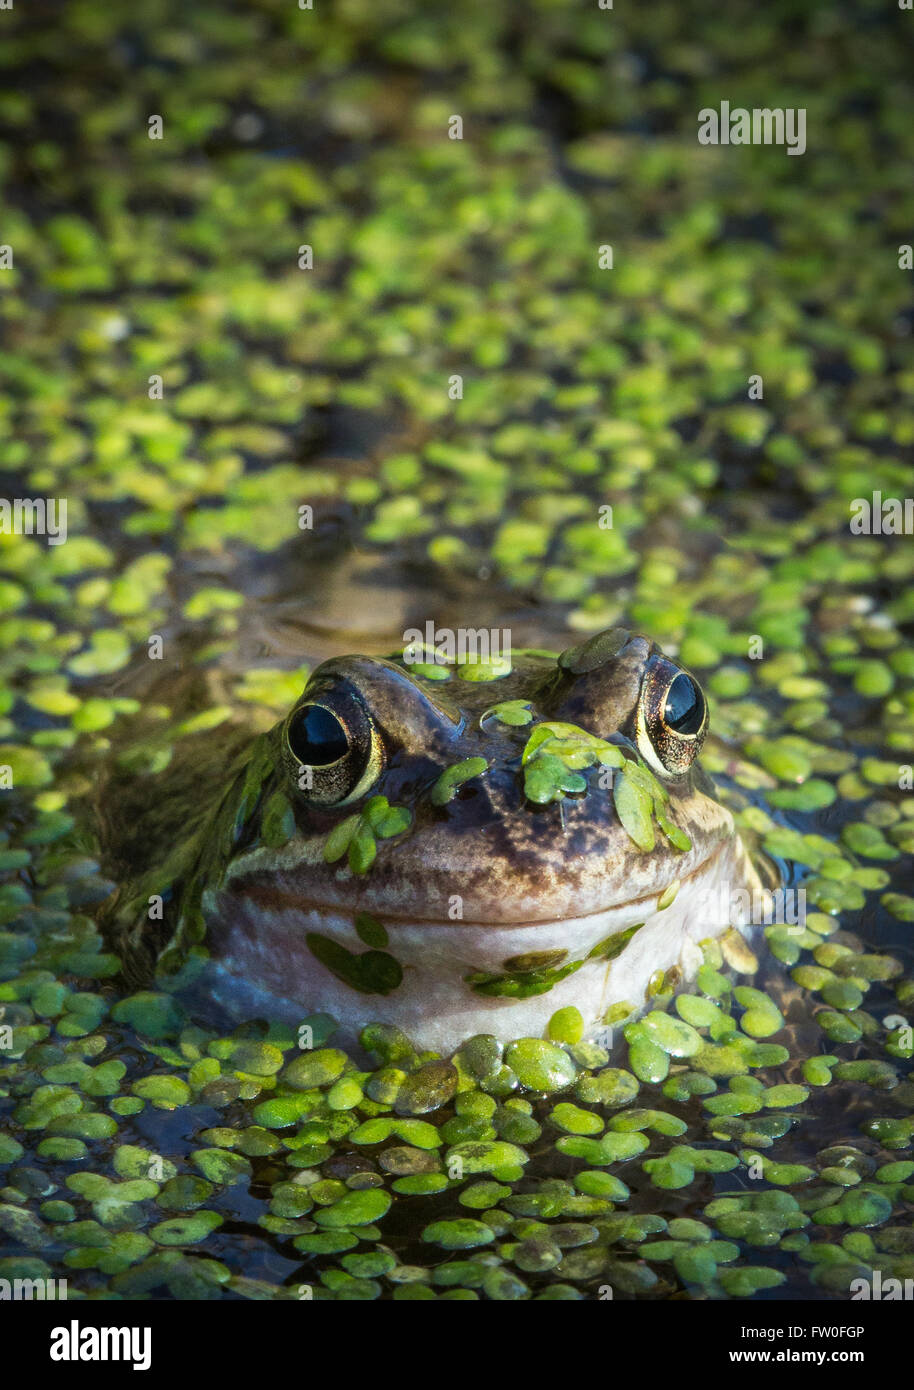 A Common Frog (Rana temporaria) surfaces amongst the weeds on a pond in spring - Stock Image